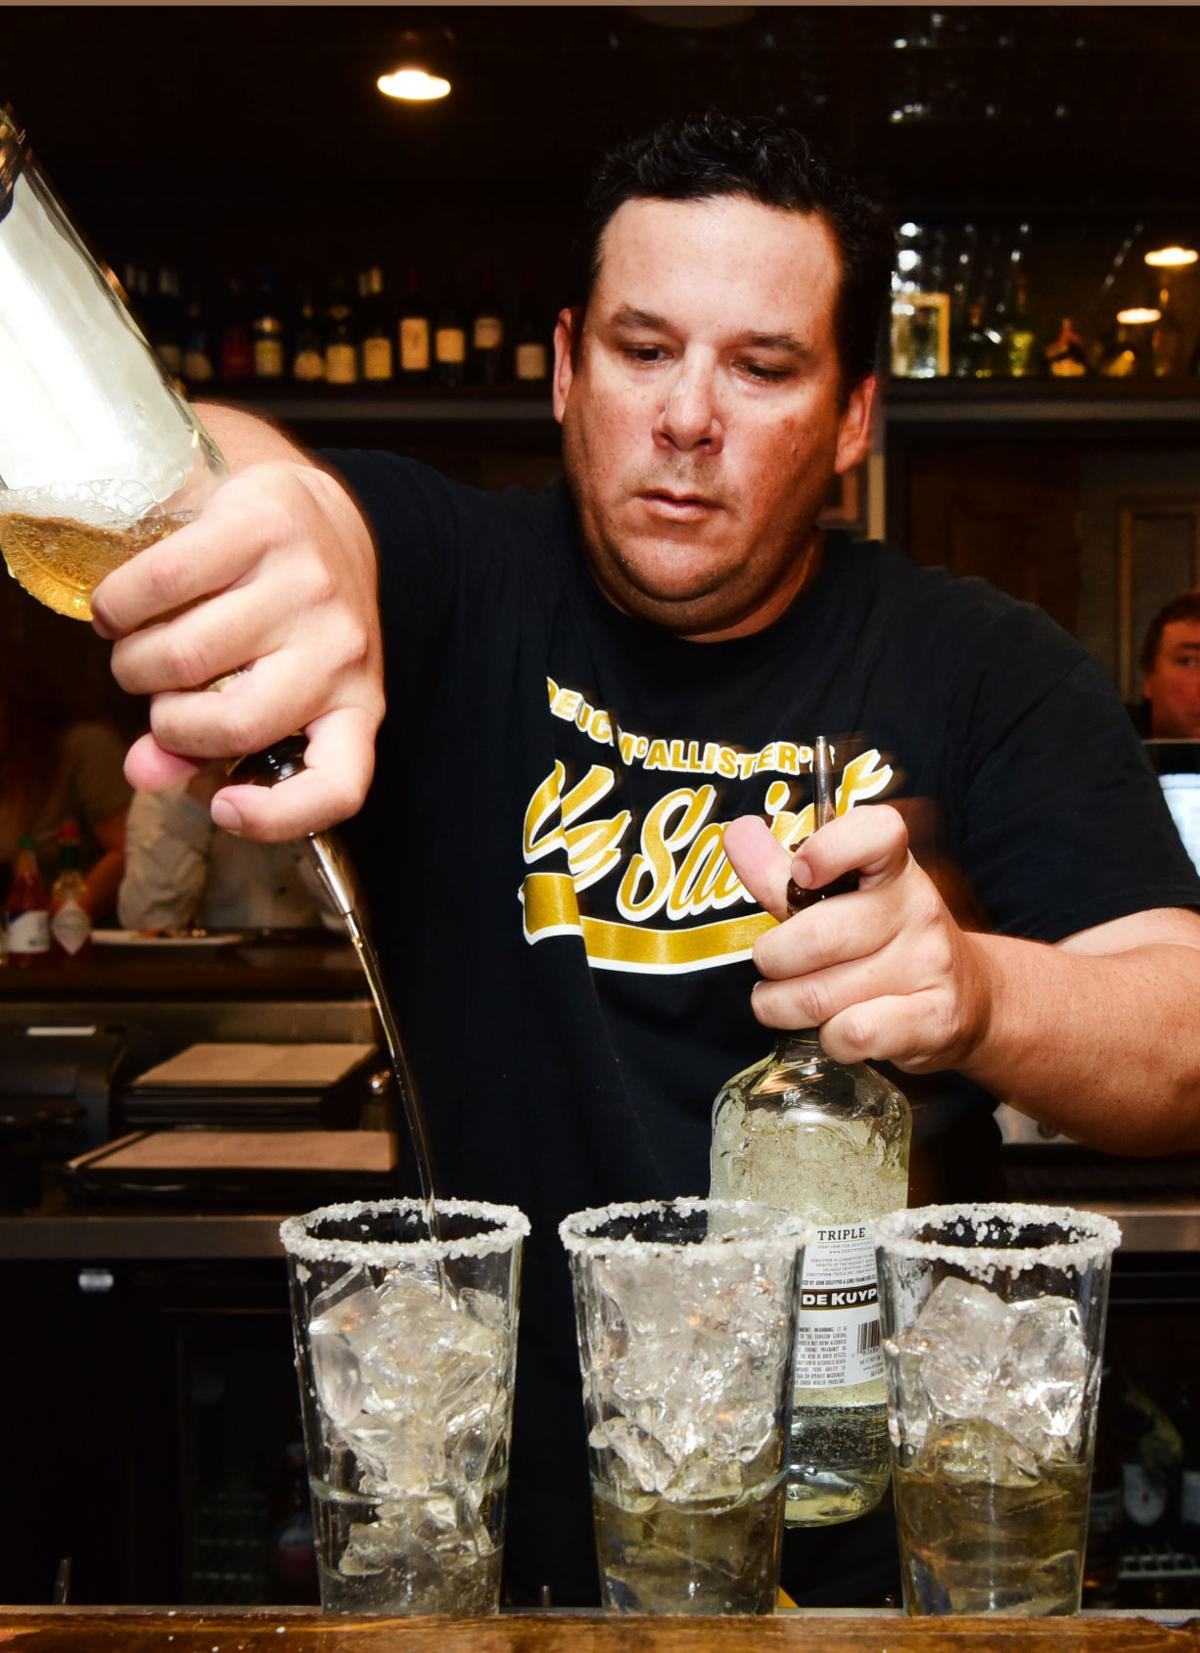 Deuce_McAlister_s_Ole_Saint_bartender_Rob_Chauvin_001